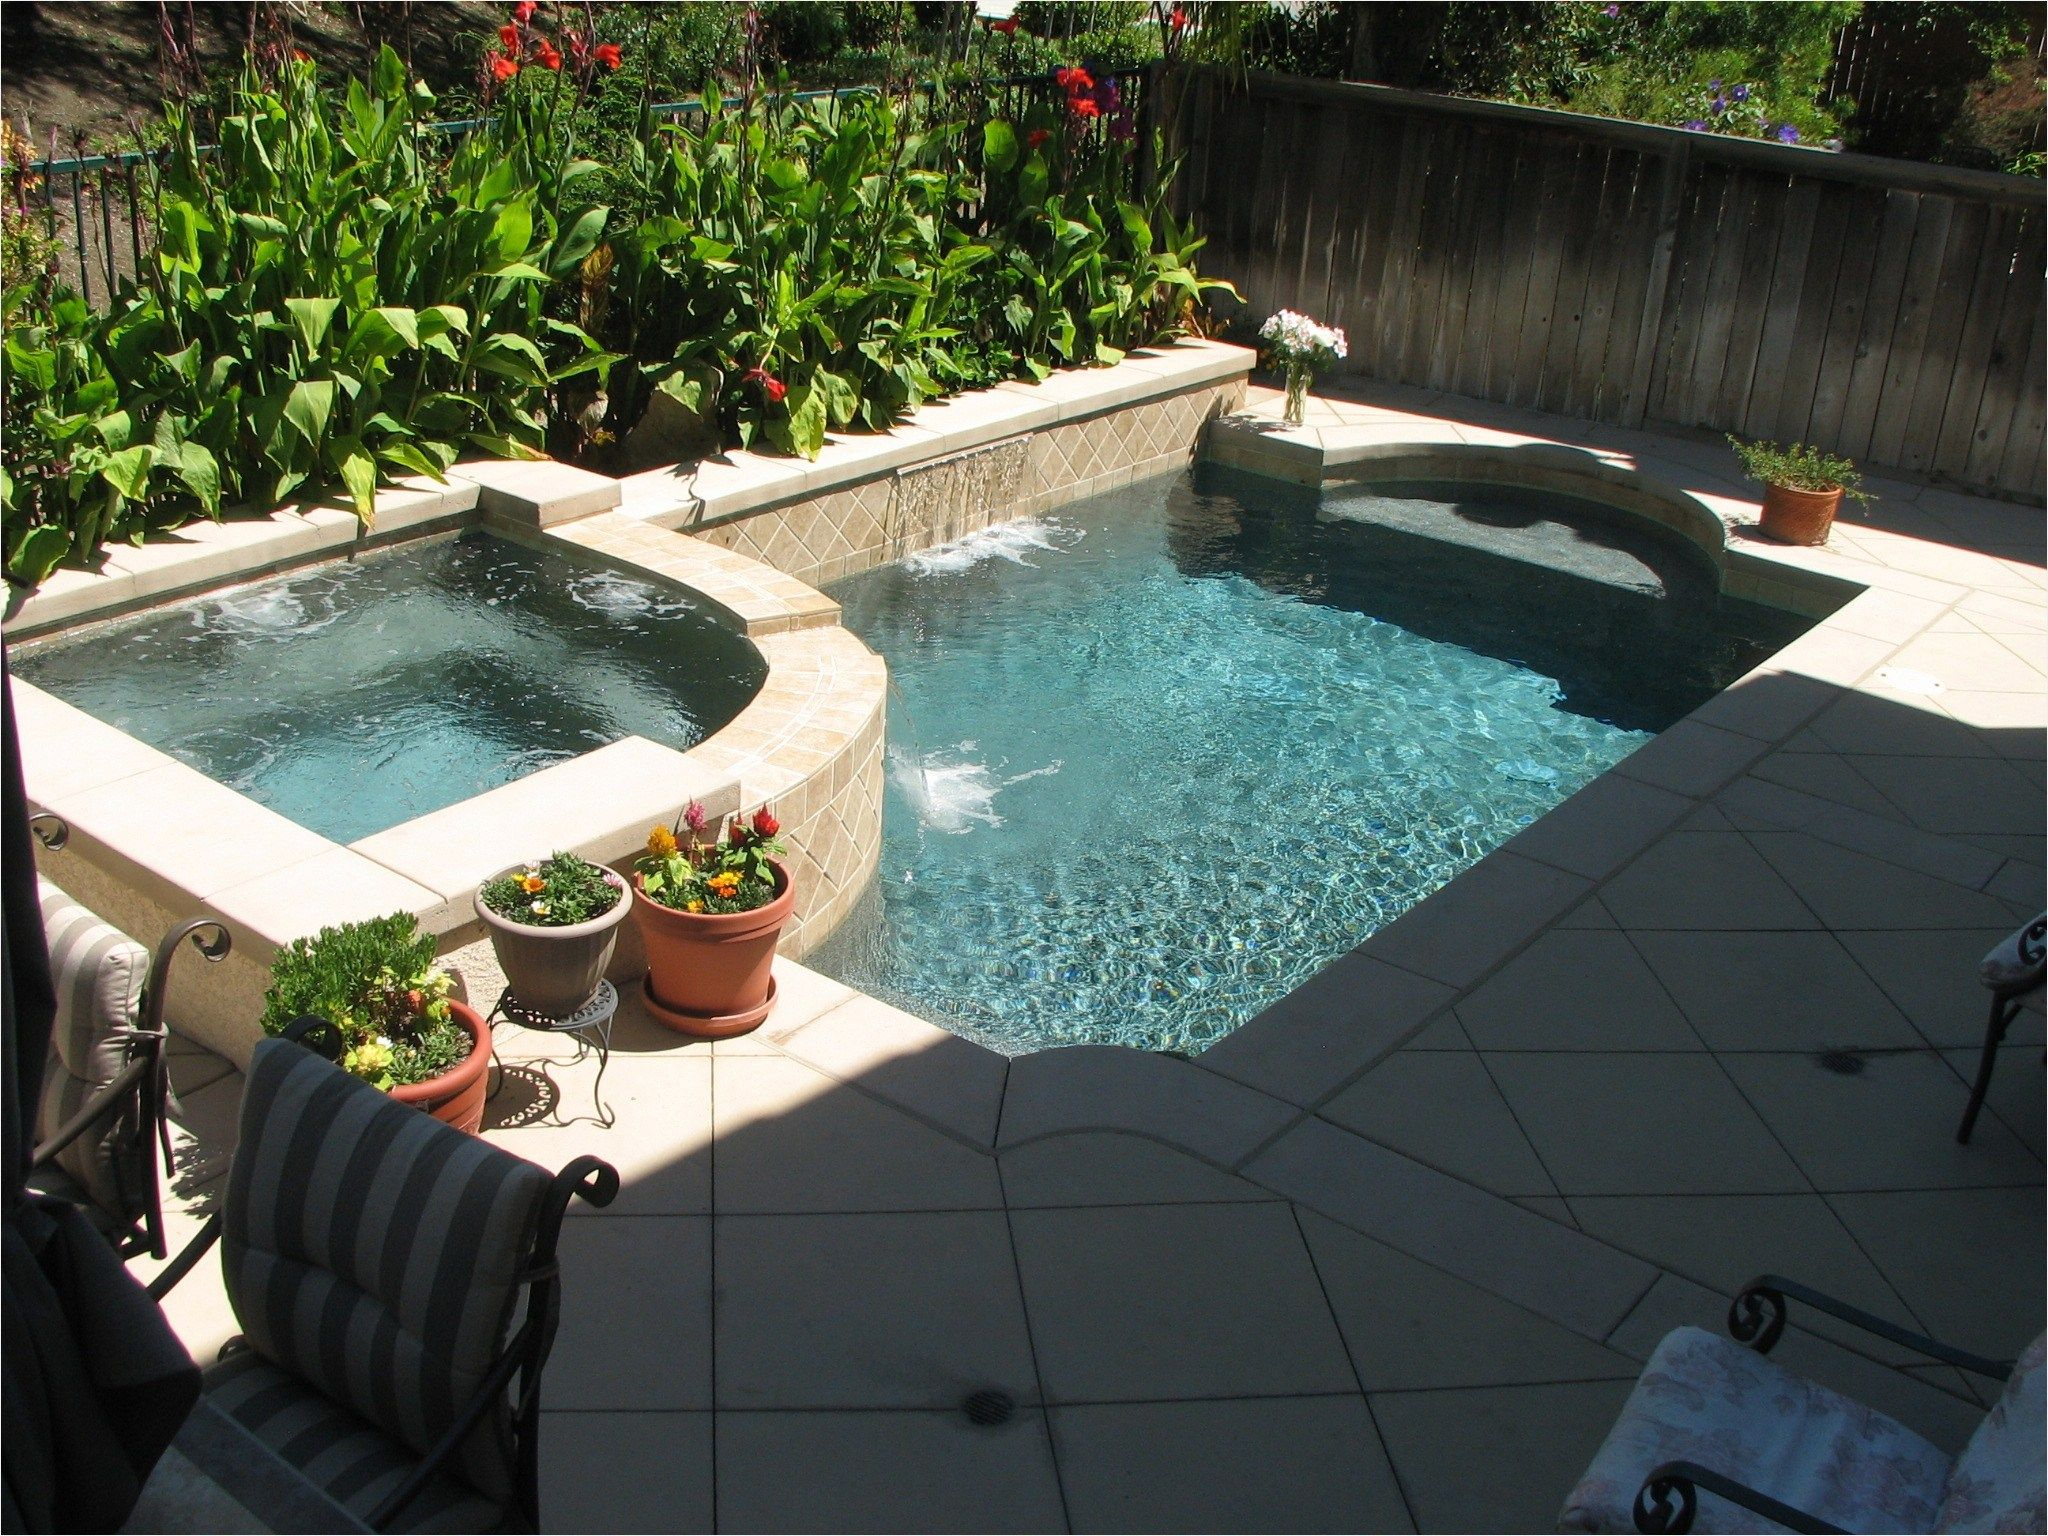 Amazing Ideas For Small Yards Pool That Will Amaze You Viraldecoration Small Pool Design Pools For Small Yards Small Backyard Pools